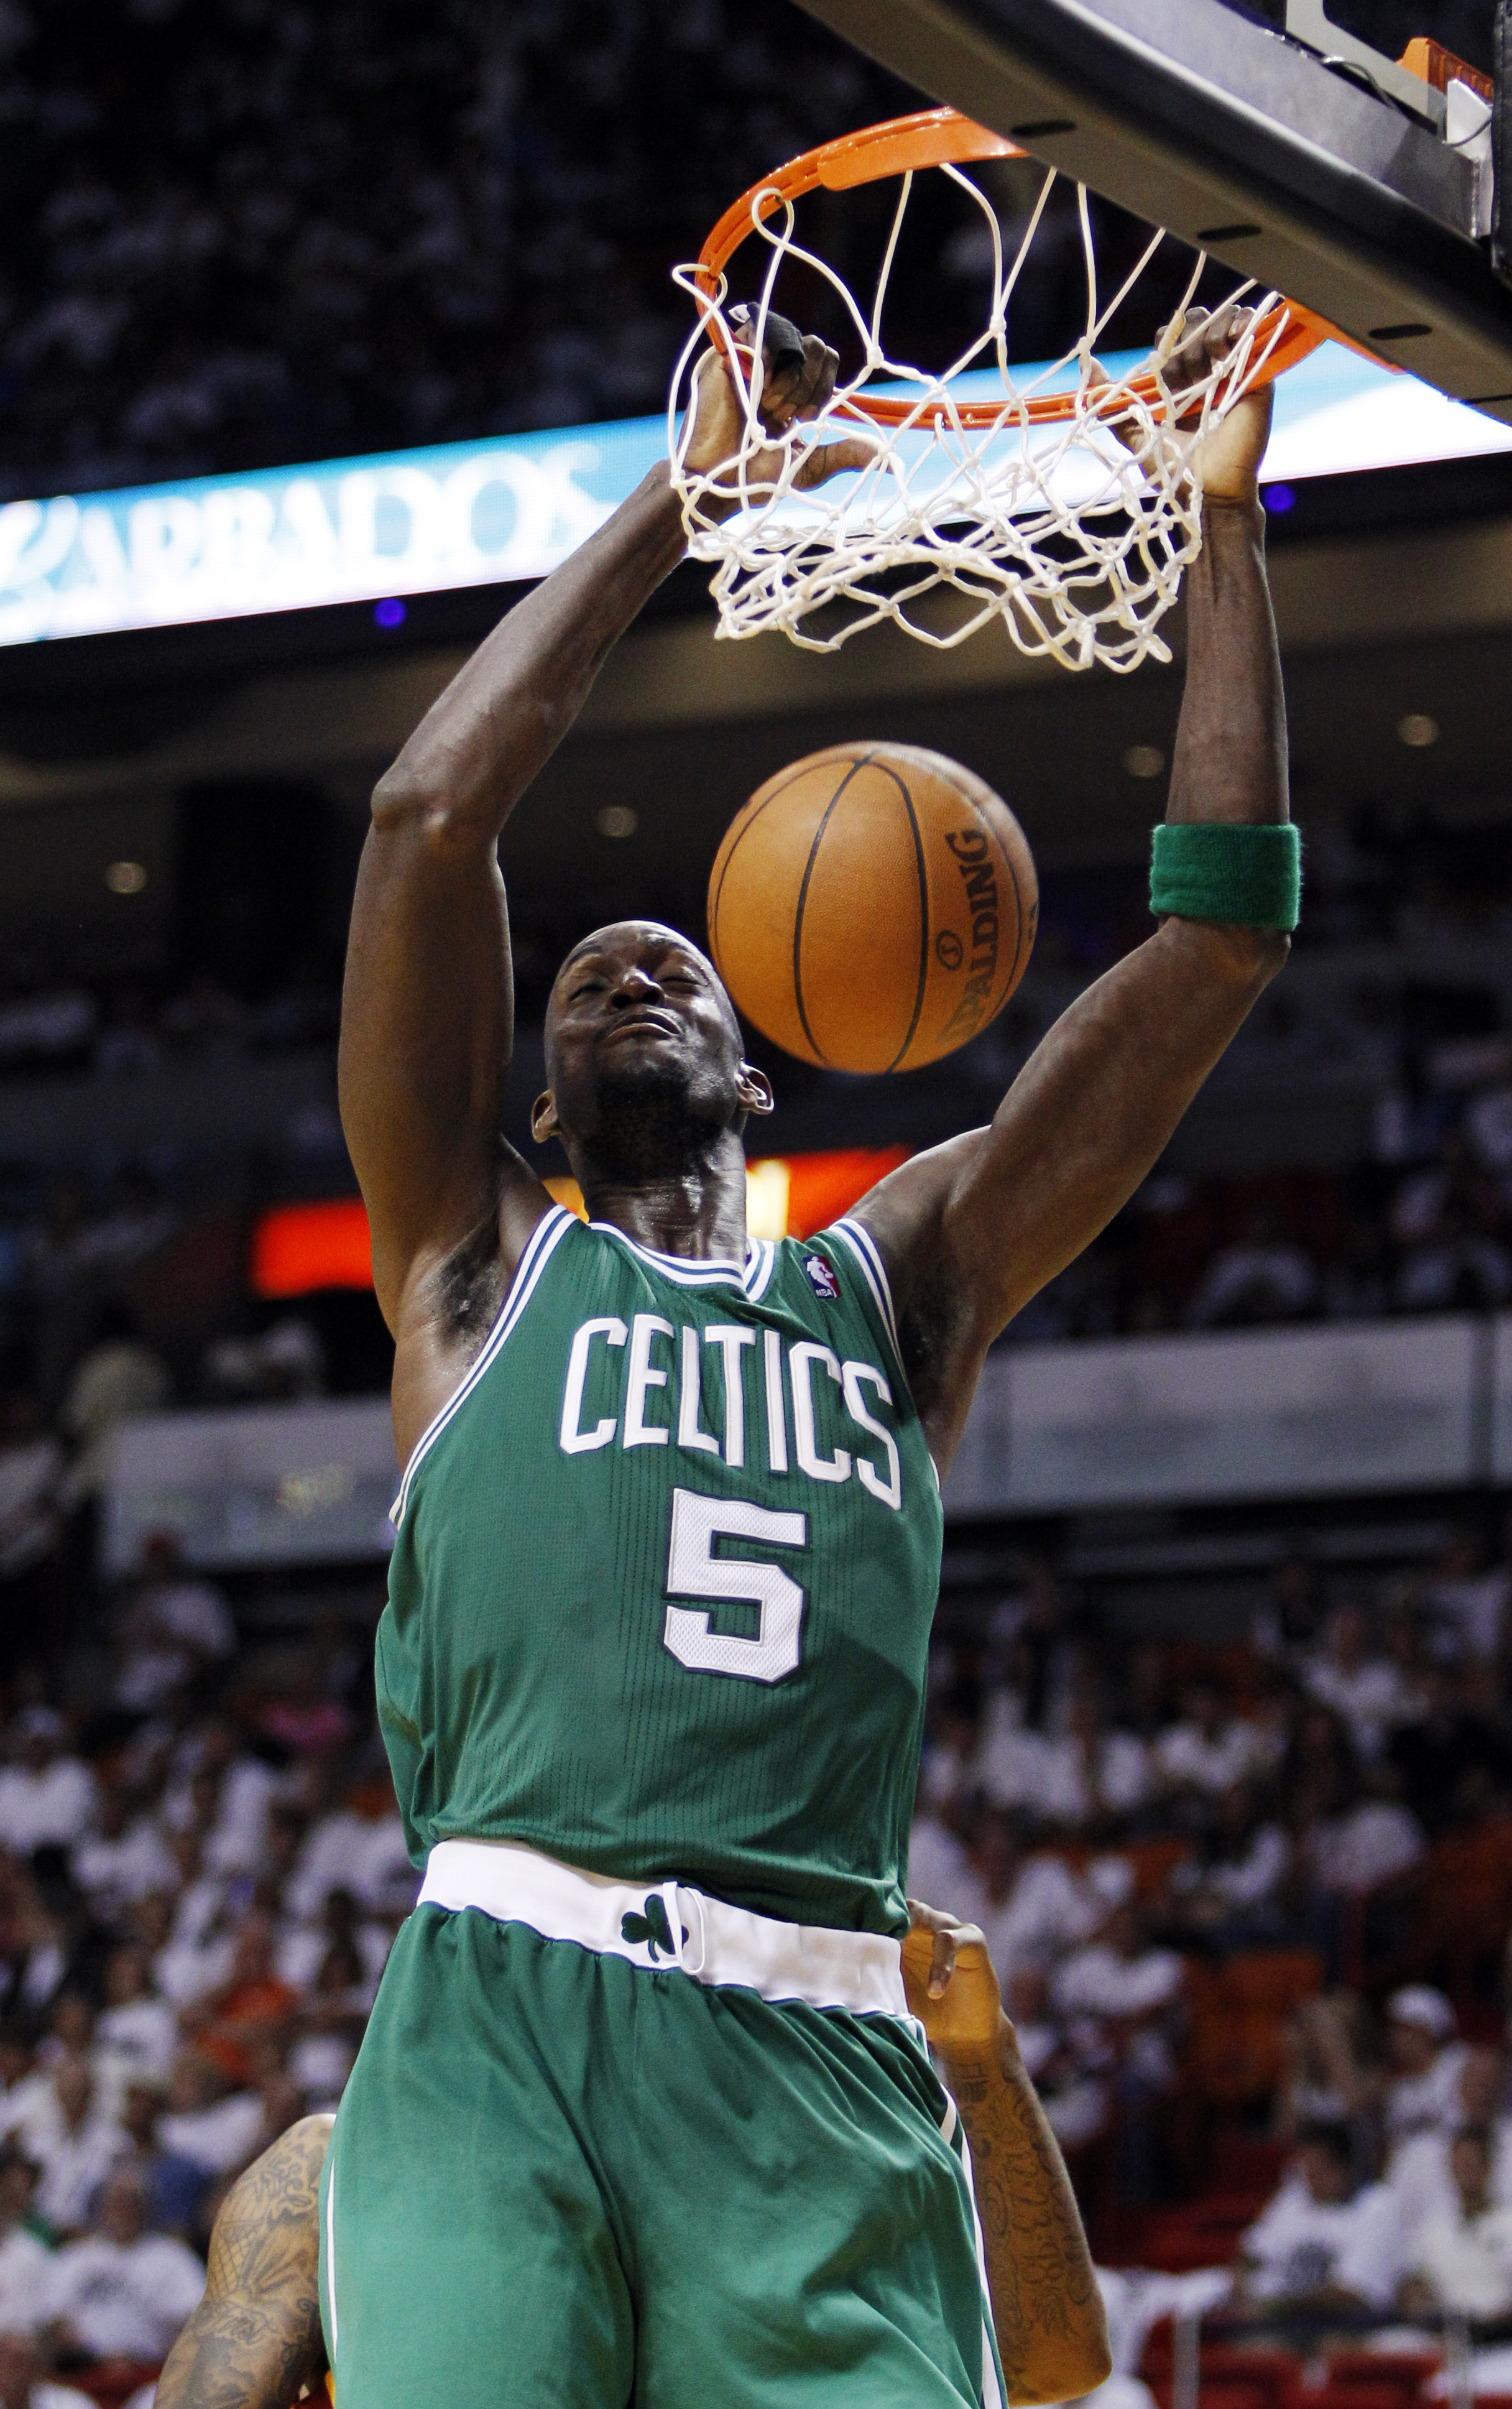 07daff35b82 Boston s Kevin Garnett scored 26 points and had 11 rebounds in the Celtics   Game 5